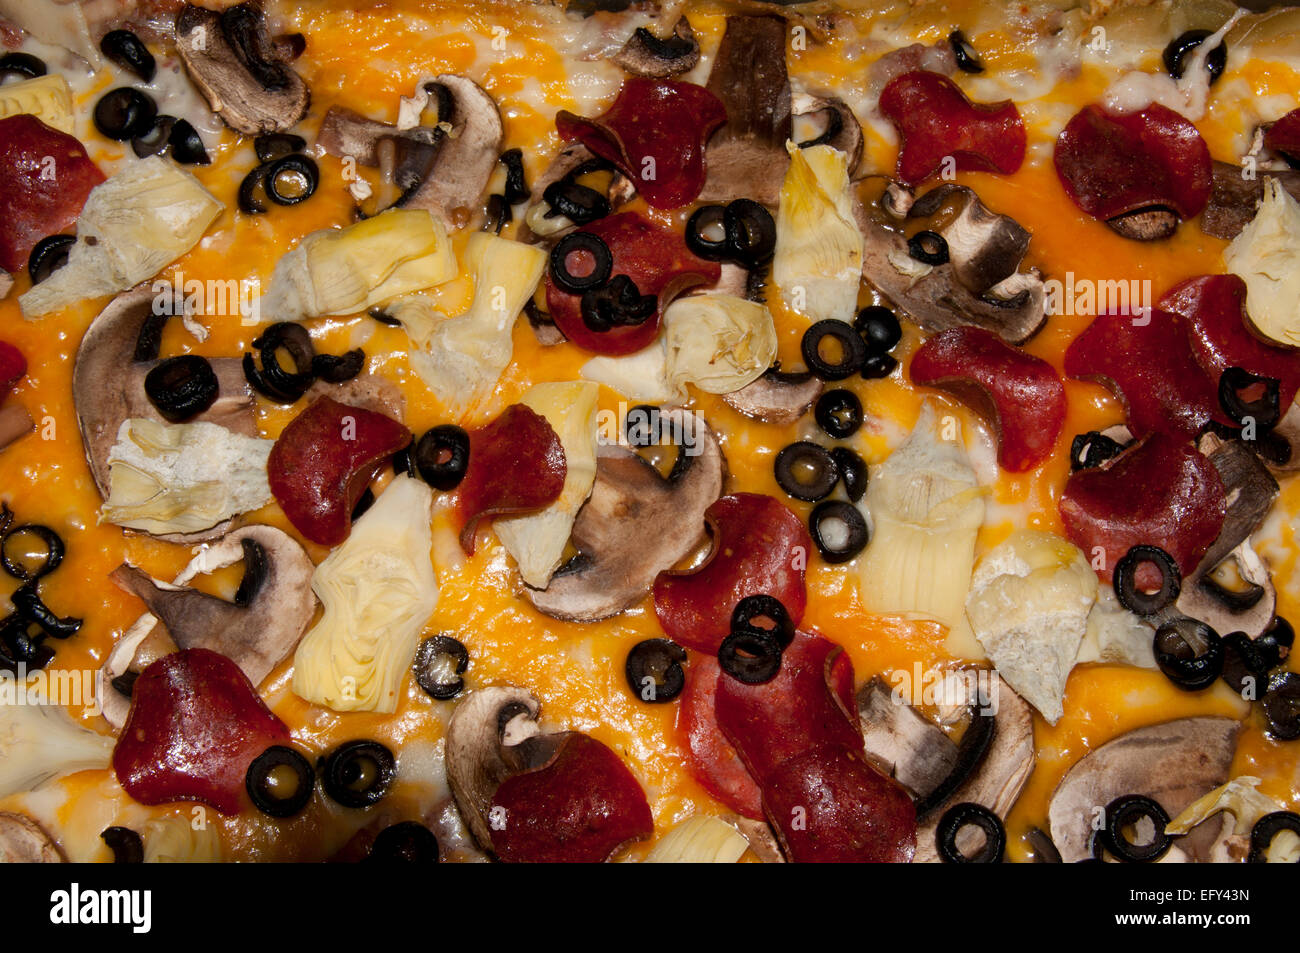 Pepperoni pizza close-up - Stock Image